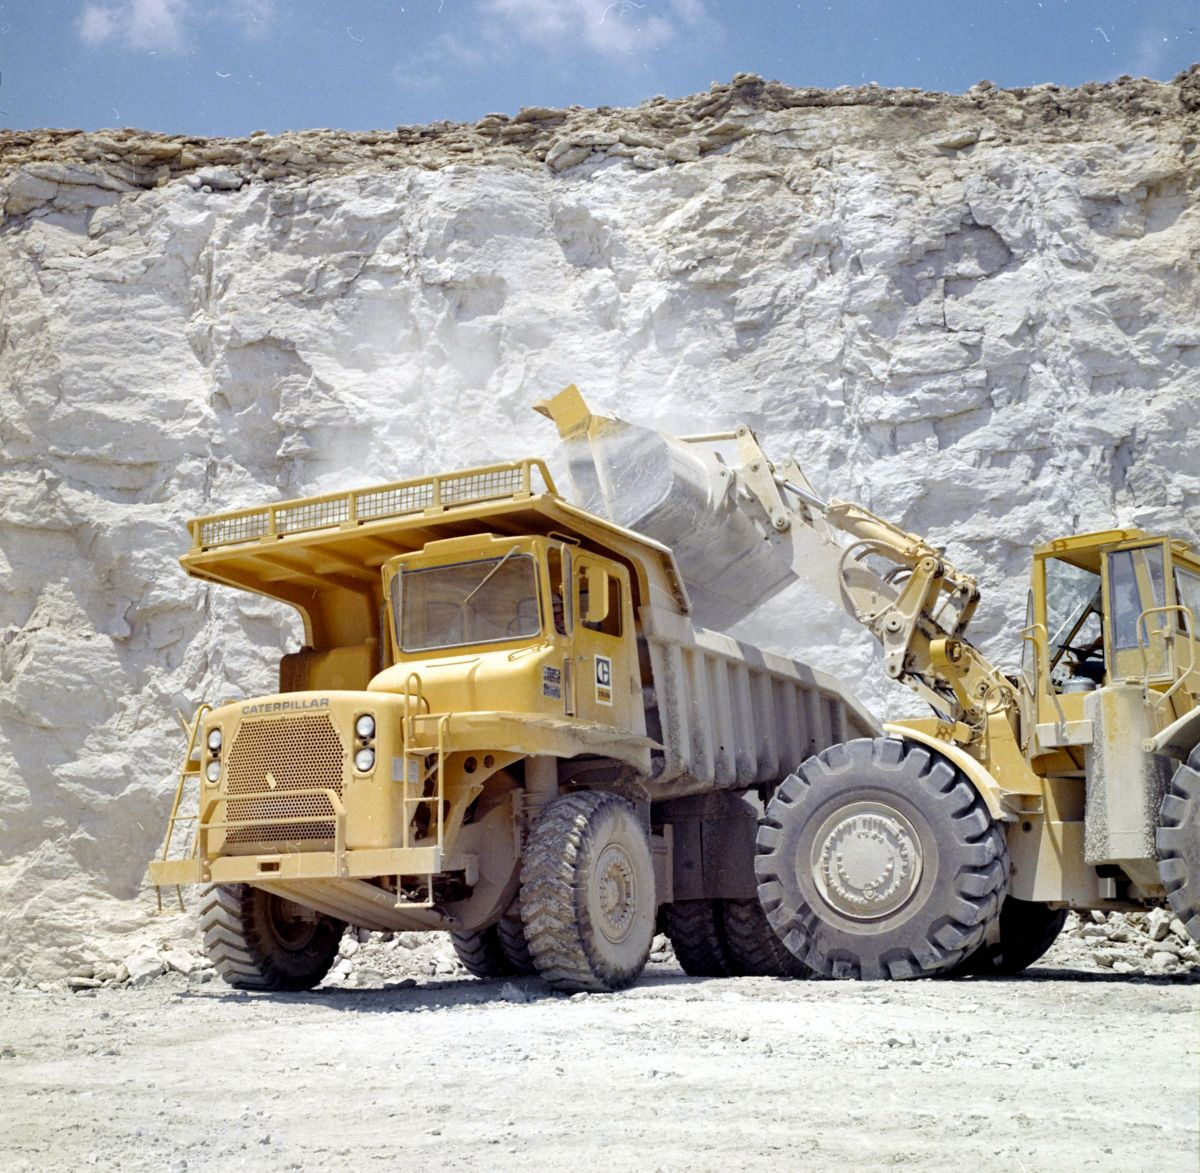 Cat 769B Off-Highway Truck and Cat Wheel Loader, 1969.